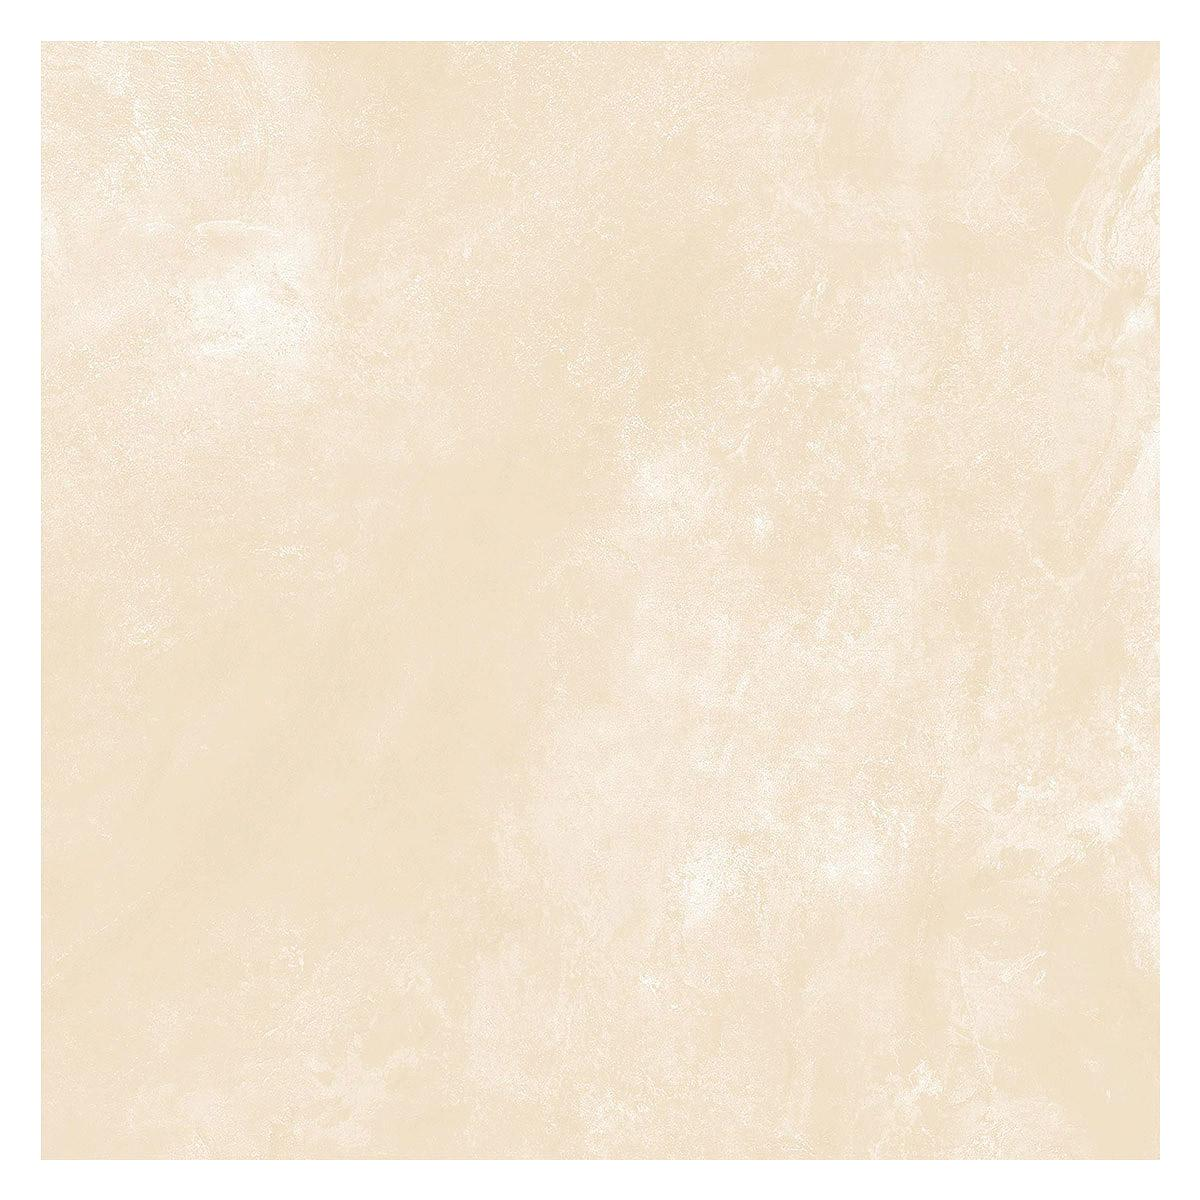 Gres Porcelánico Natural Hueso Mate - 61X61 cm - 1.48 m2